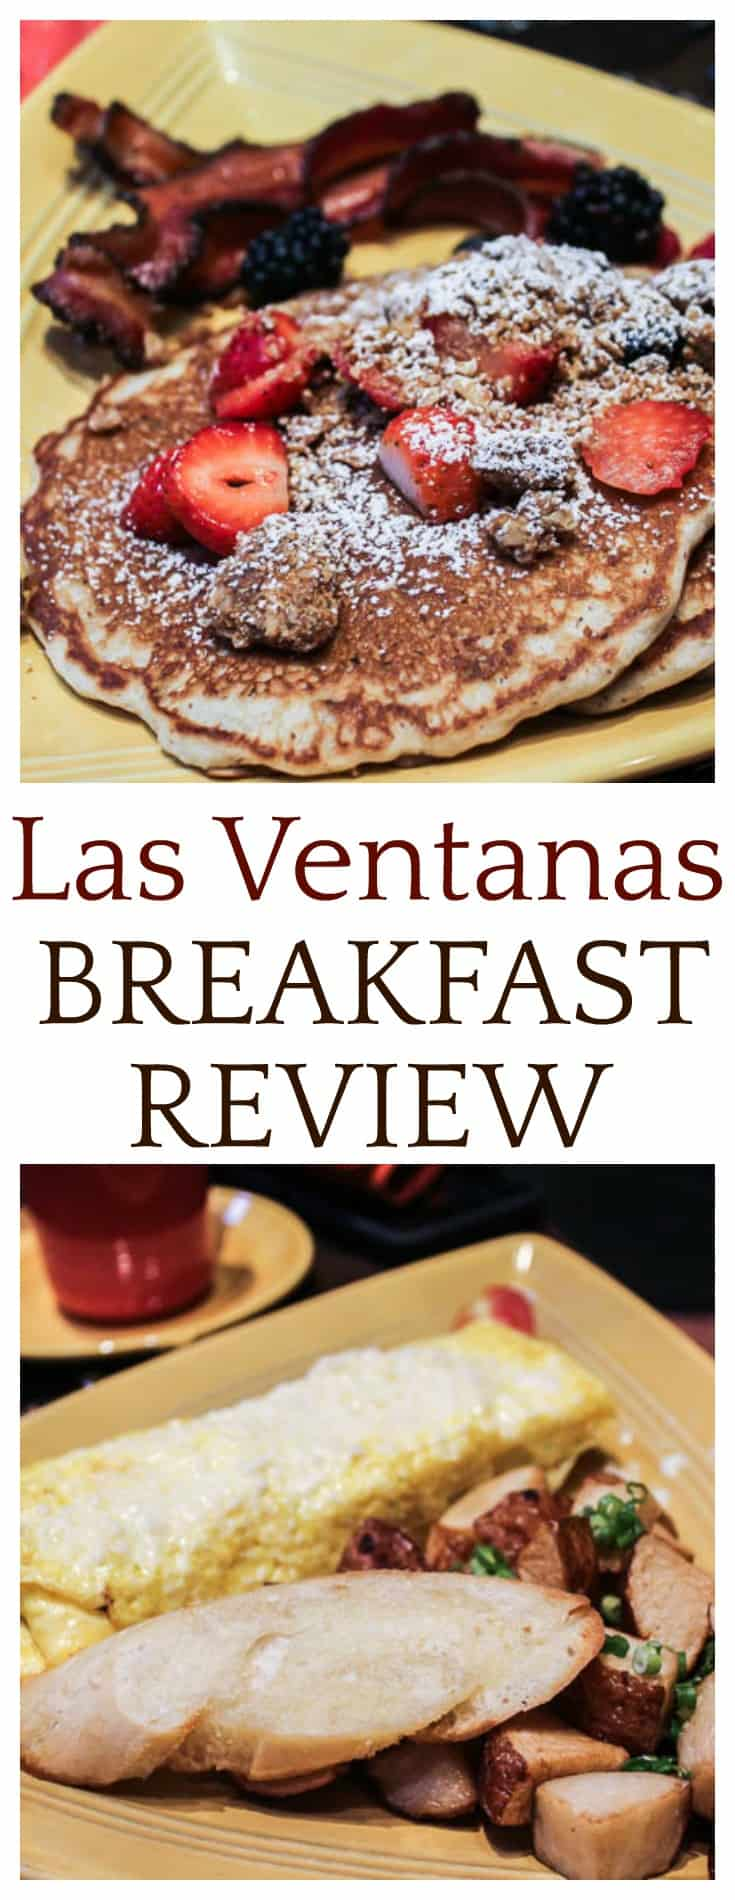 This Las Ventanas breakfast review is based on my experience when visiting the restaurant in November 2017 with my family | #disneydining #disneytravel #disneyvacation #disneyworld #restaurantreview #lasventanas